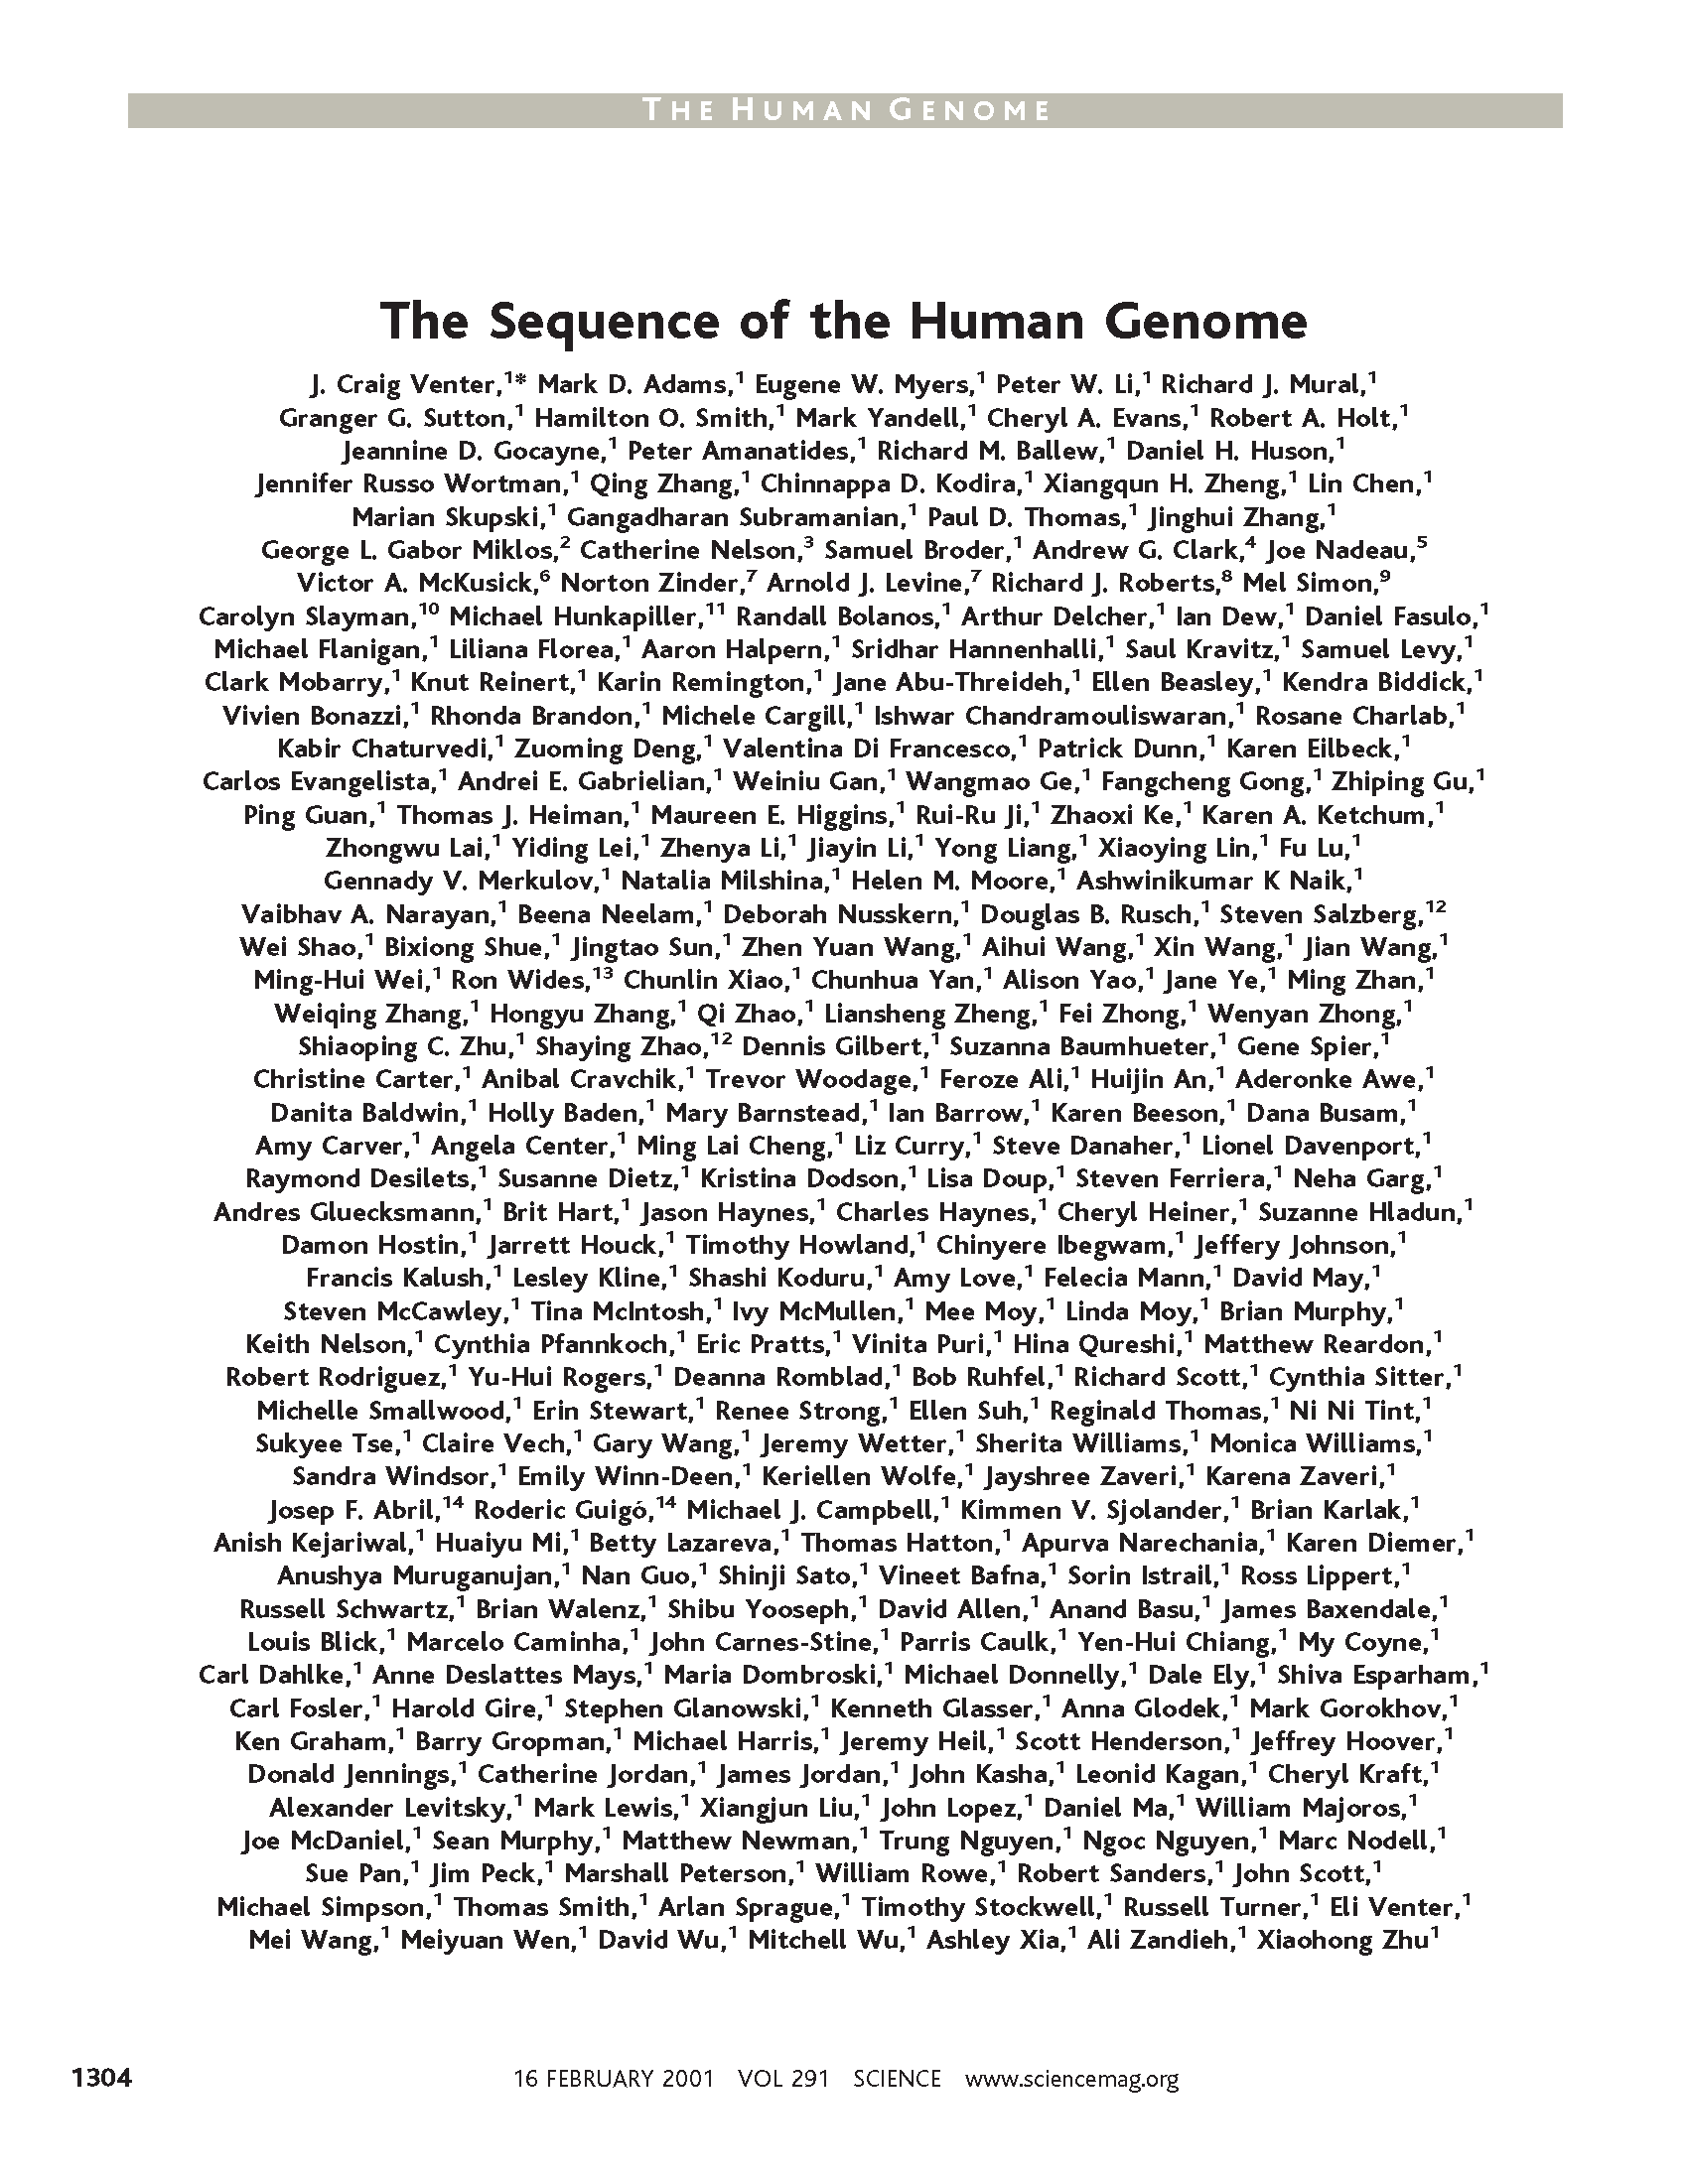 example word essay best ideas cover letter bank sample branch example word essay best ideas favorite word essay reportwebfc favorite word essay example wartortle that handy